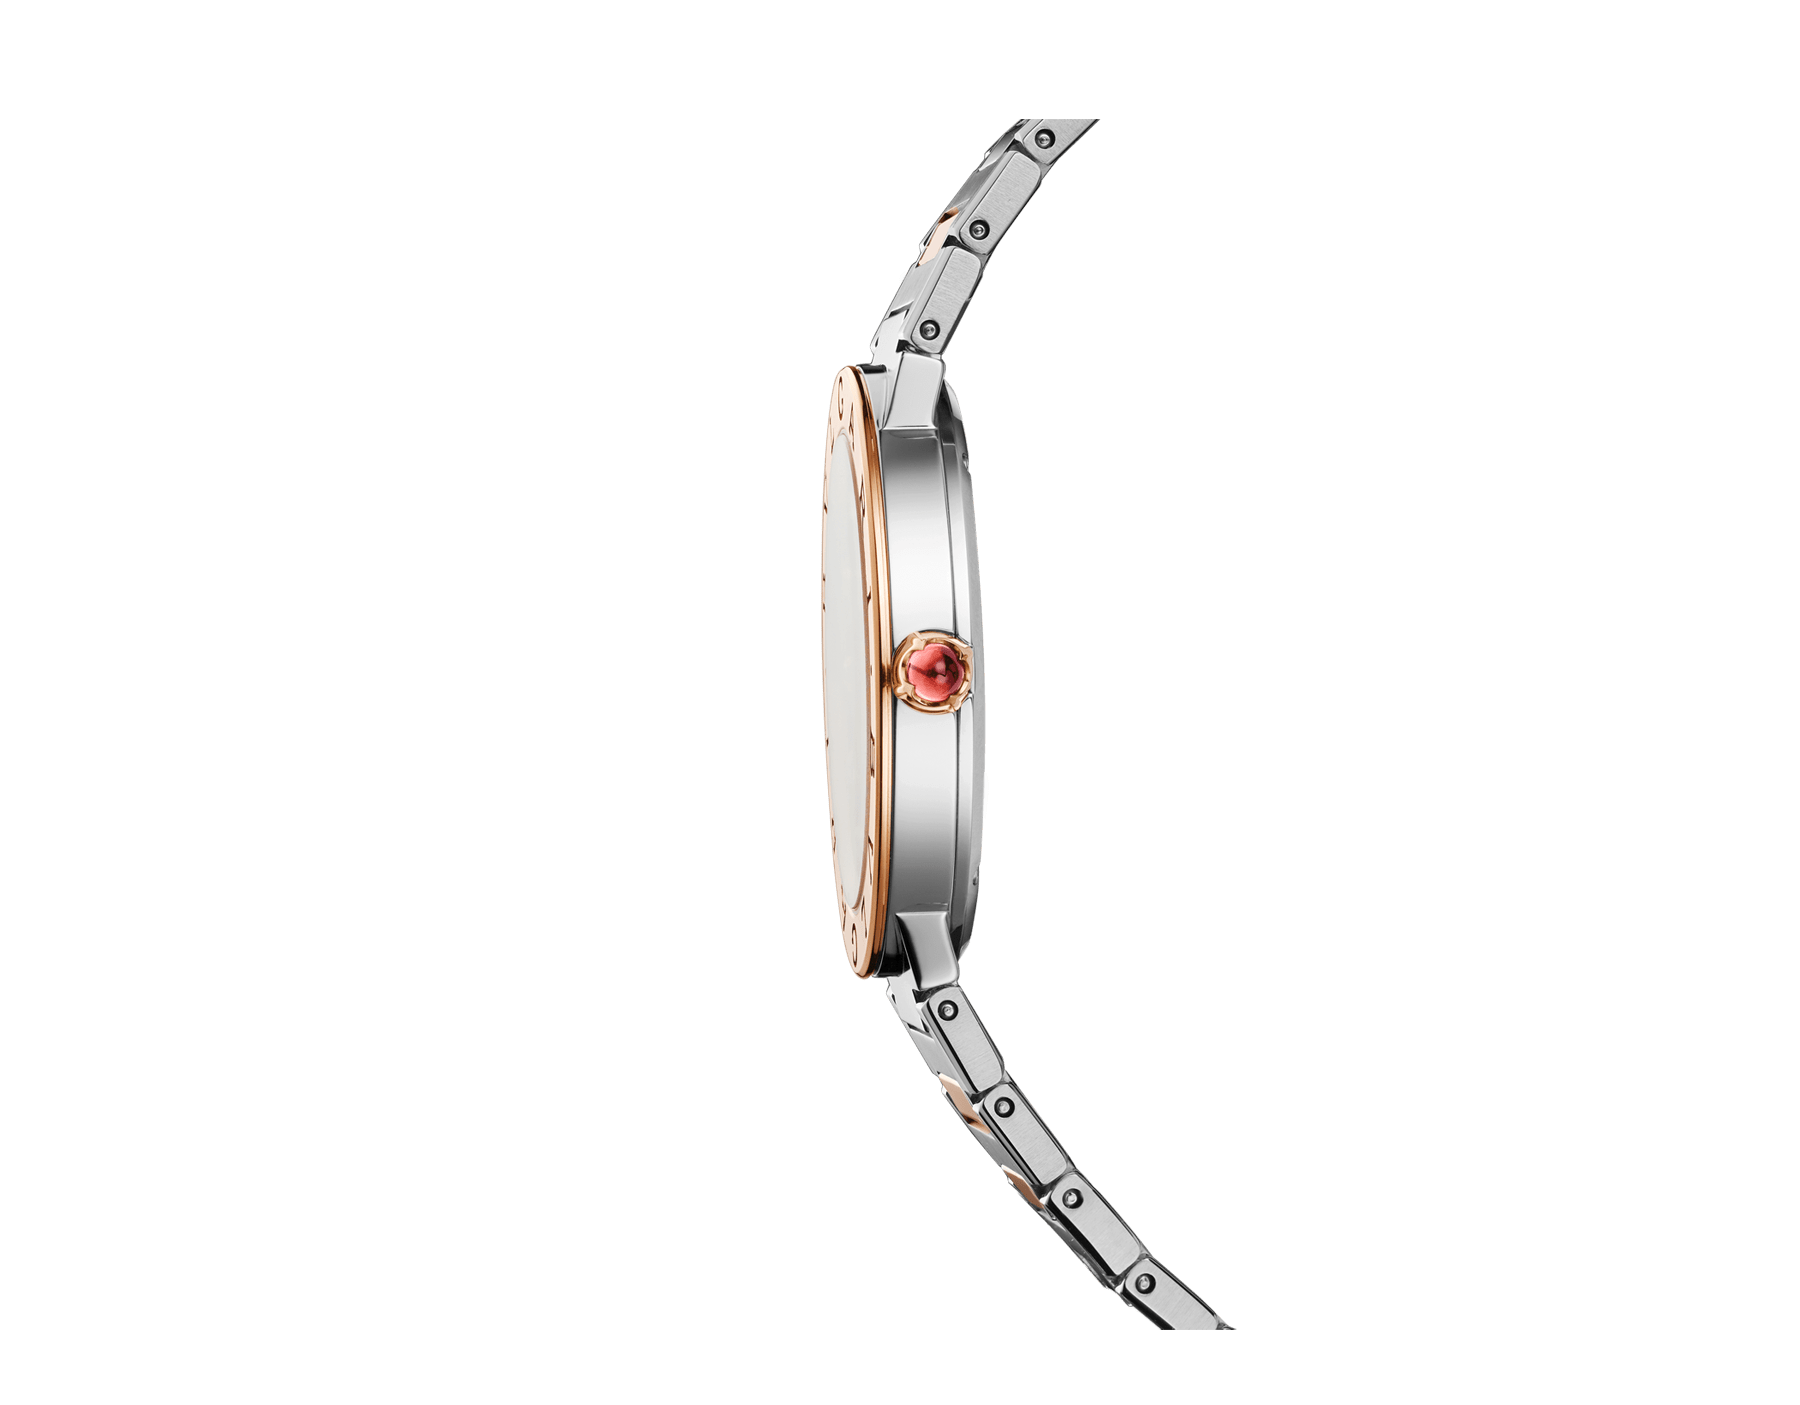 BVLGARI BVLGARI LADY watch with stainless steel case, 18 kt rose gold bezel engraved with double logo, white mother-of-pearl dial and 18 kt rose gold and stainless steel bracelet 102925 image 2